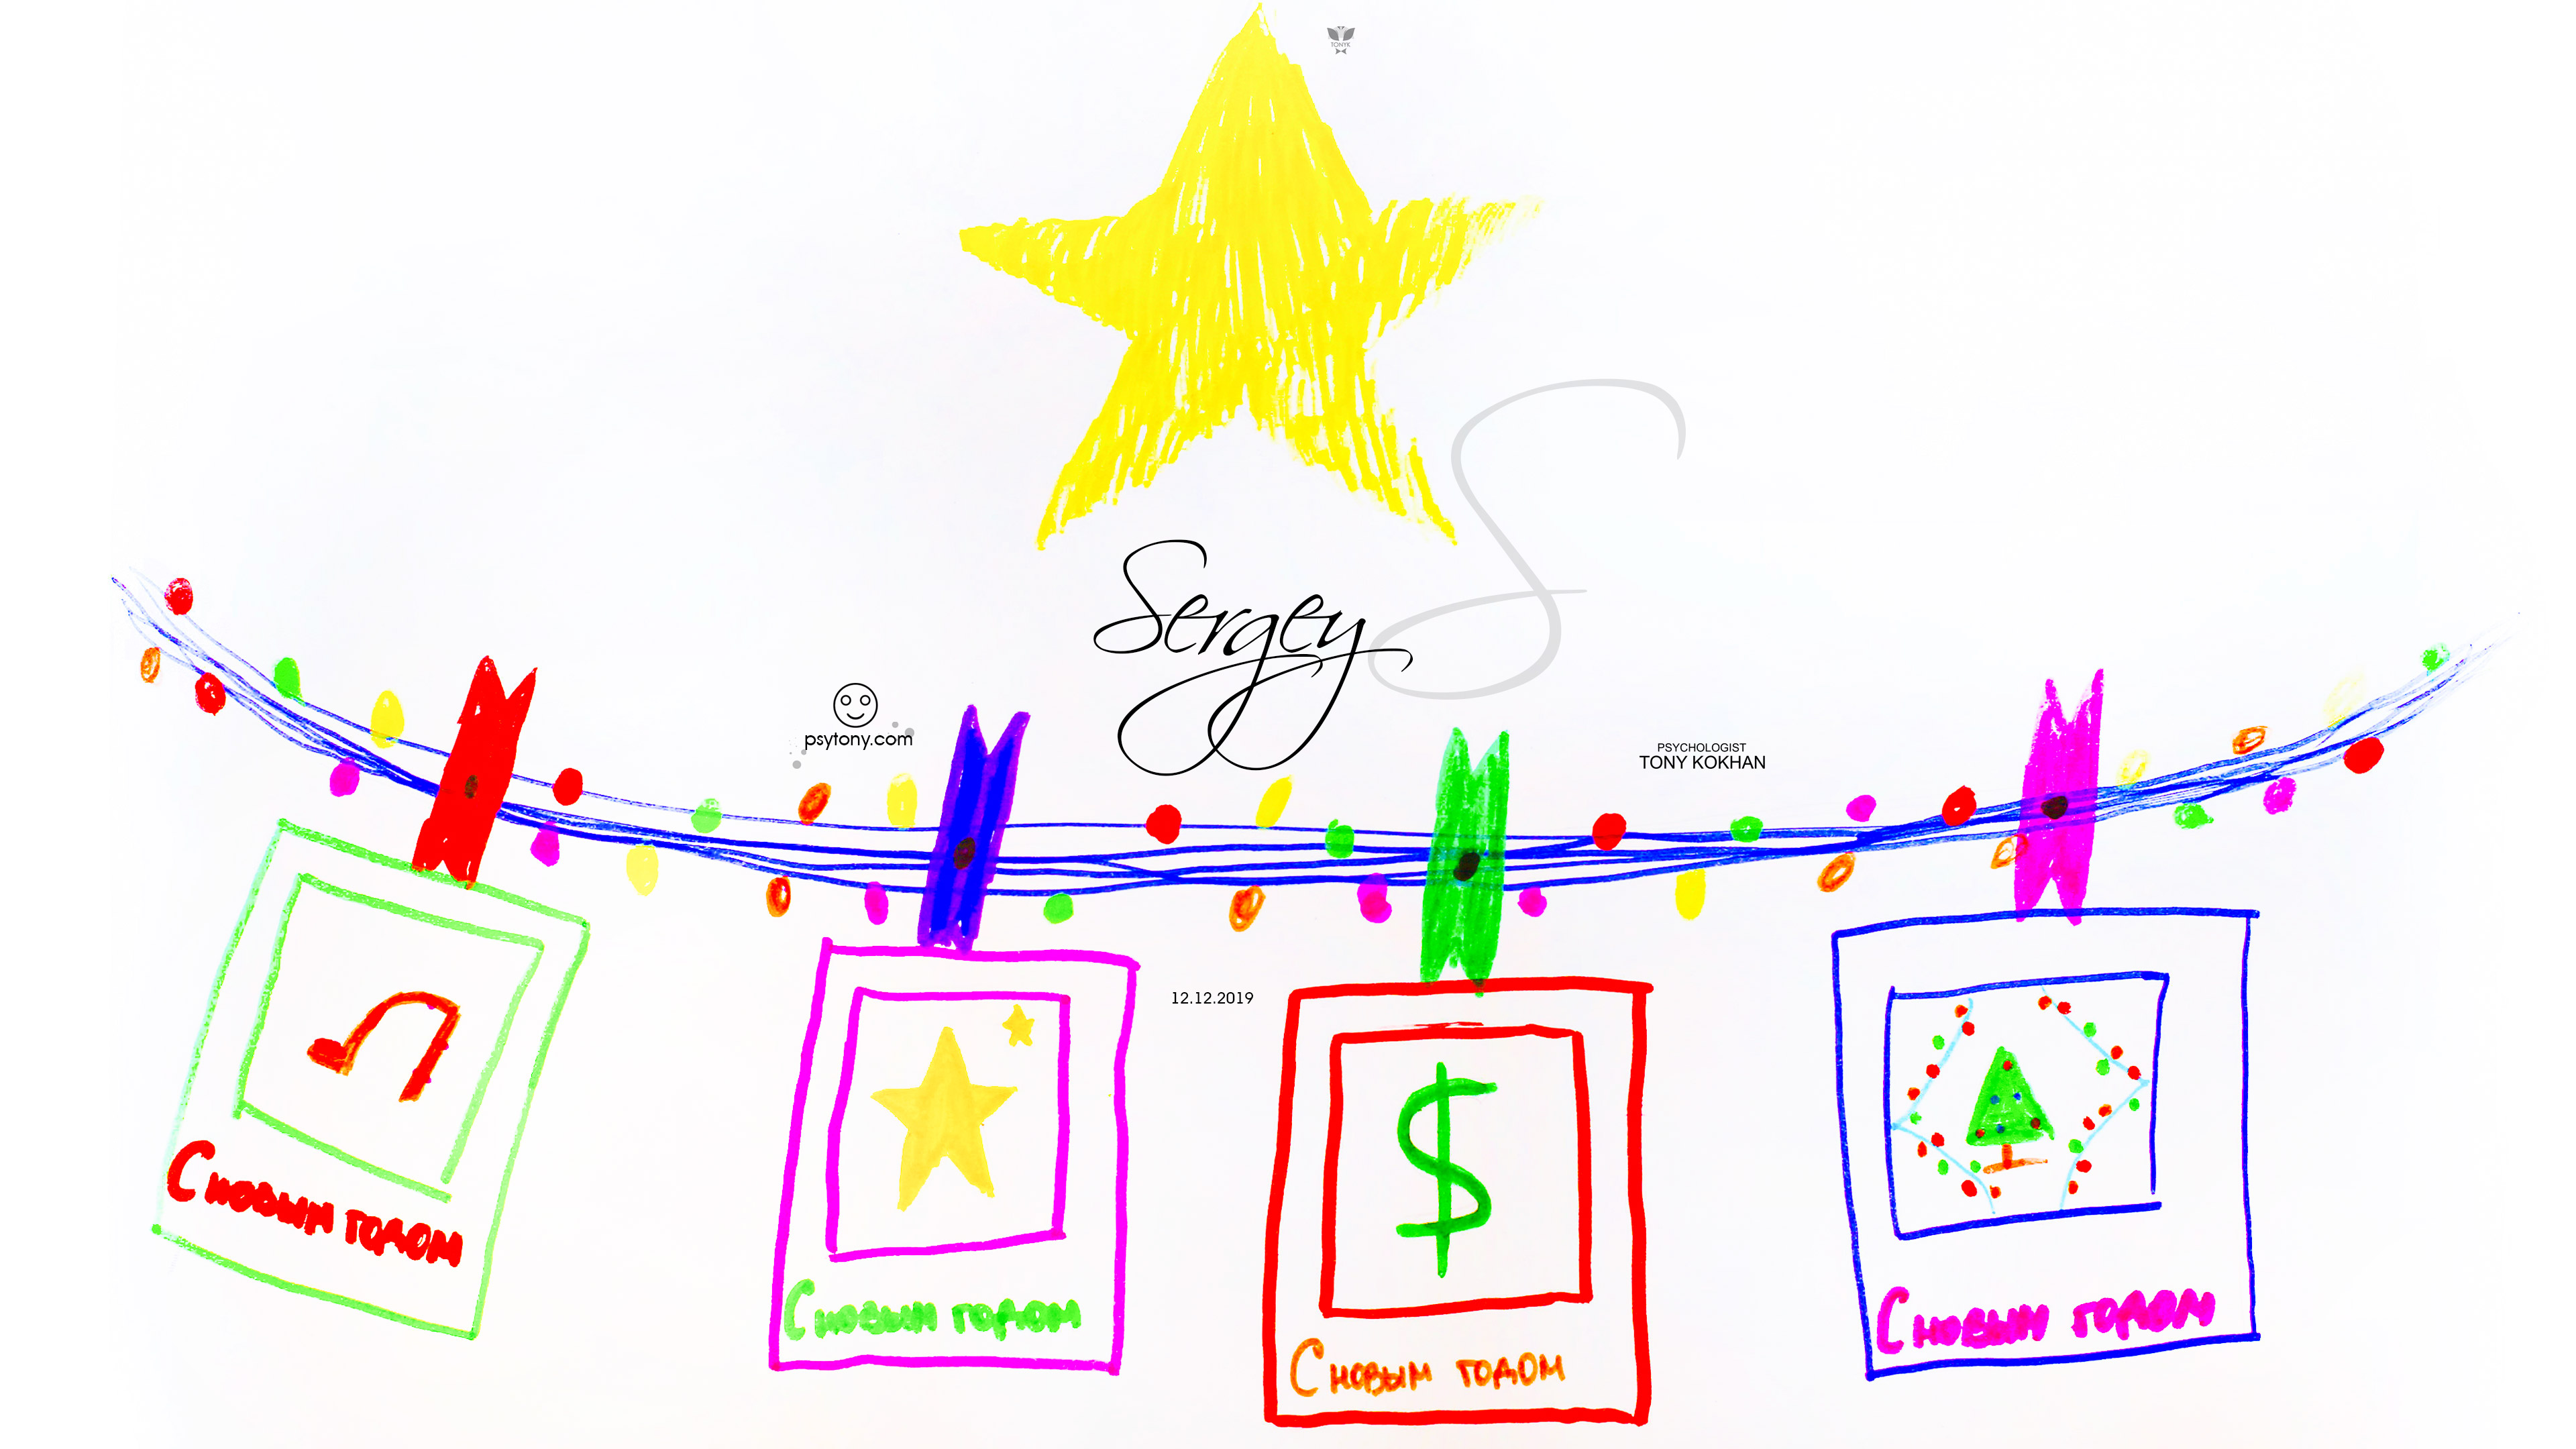 Sergey-Soul-Boy-Star-New-Year-Pin-Checkboxes-Images-Heel-Shoe-Stars-Dollar-Christmas-Tree-Garland-Picture-Markers-2019-Multicolors-4K-Wallpapers-by-Psychologist-Tony-Kokhan-www.psytony.com-image